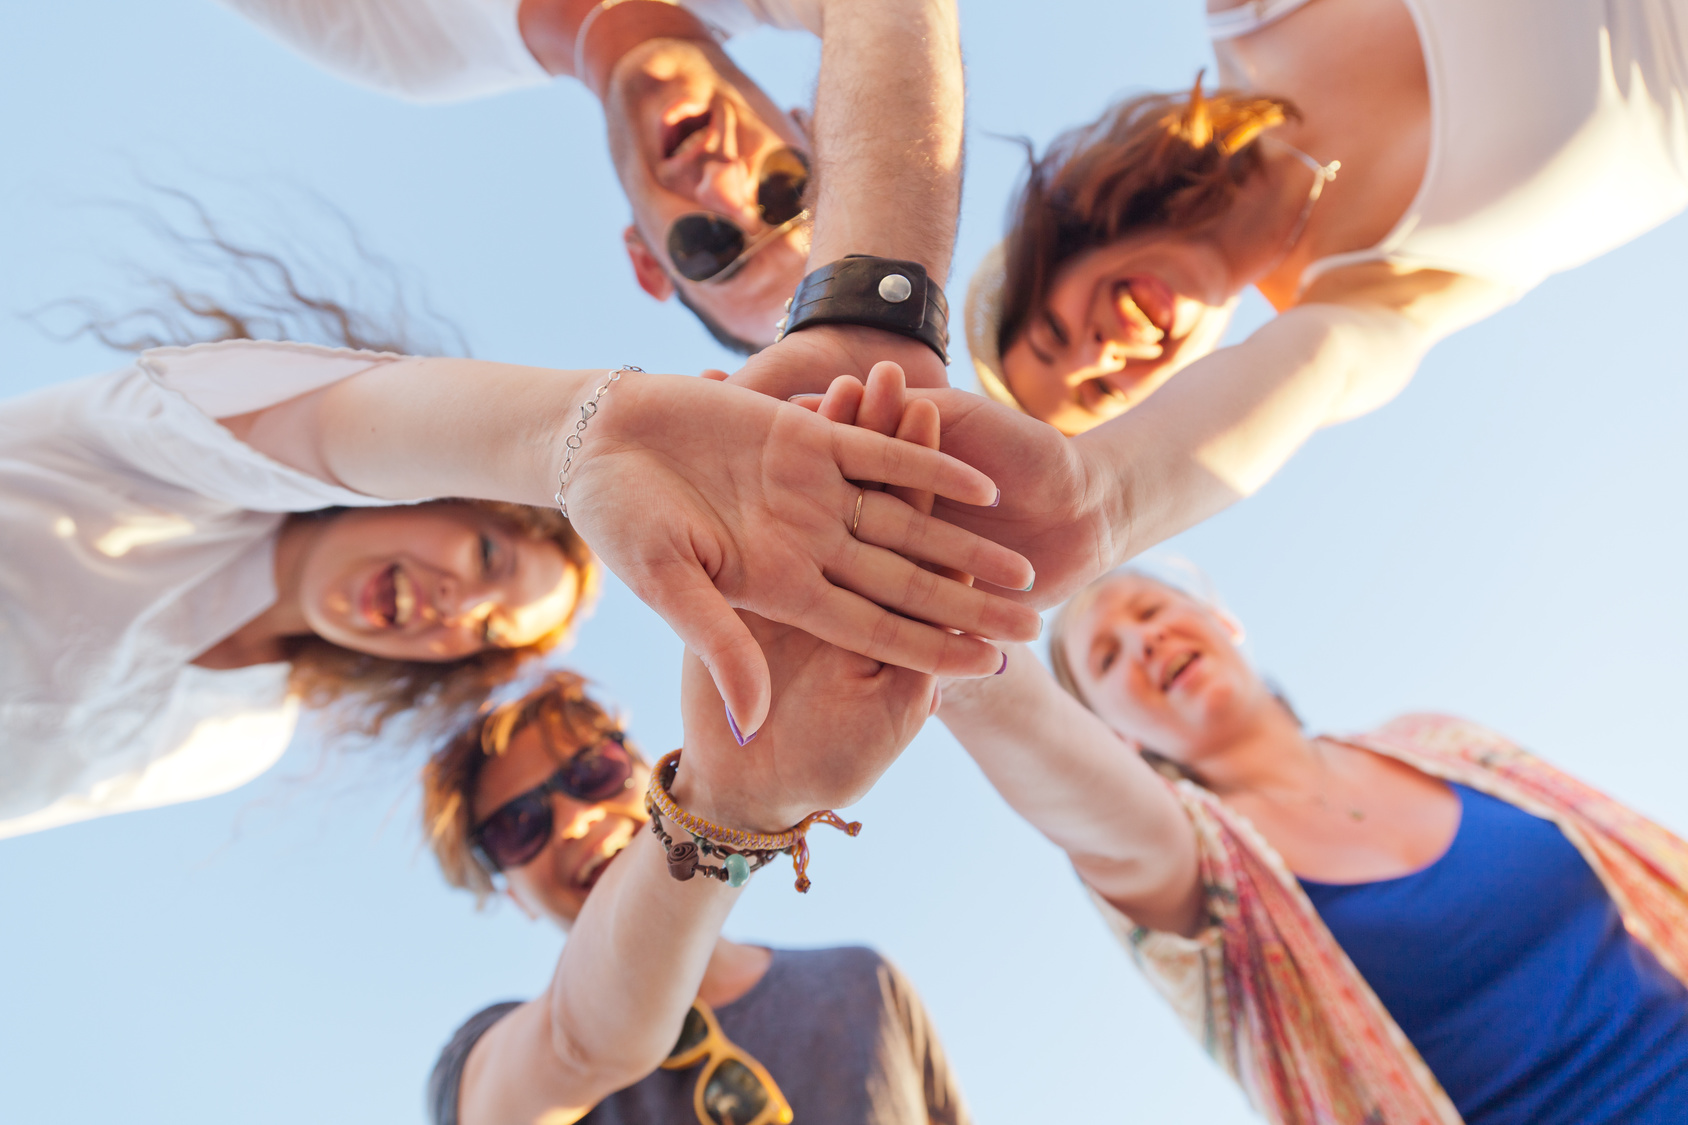 Hands close-up of friends joined together. The concept of friendship. Group of 5 young happy people